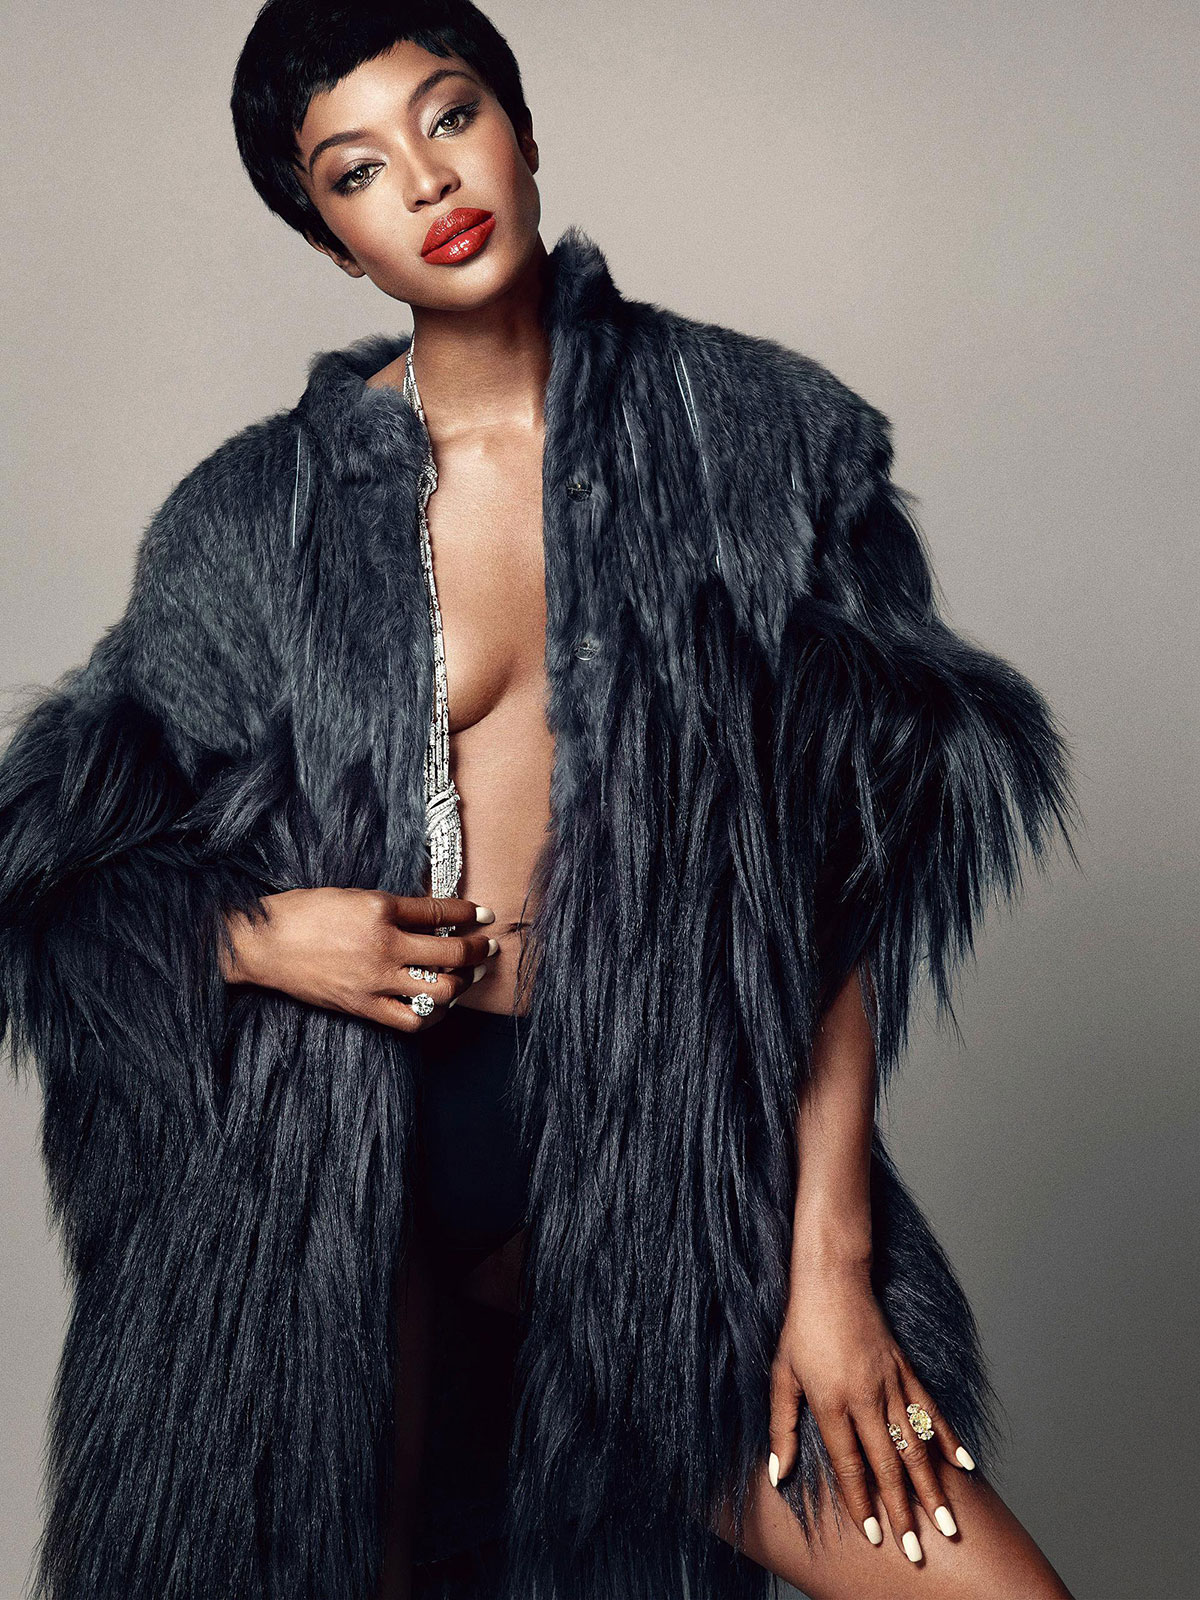 NAOMI-CAMPBELL-in-Madame-Figaro-December-2014-Issue-7.jpg